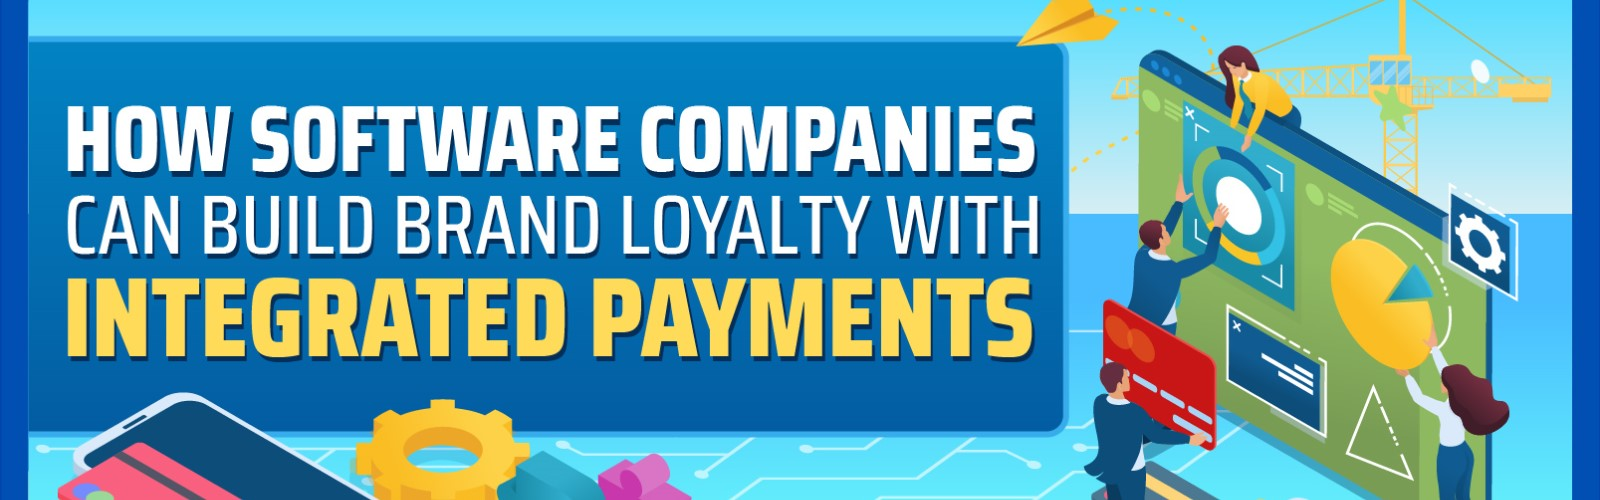 How Software Companies Can Build Brand Loyalty With Integrated Payments-Infographic-Banner